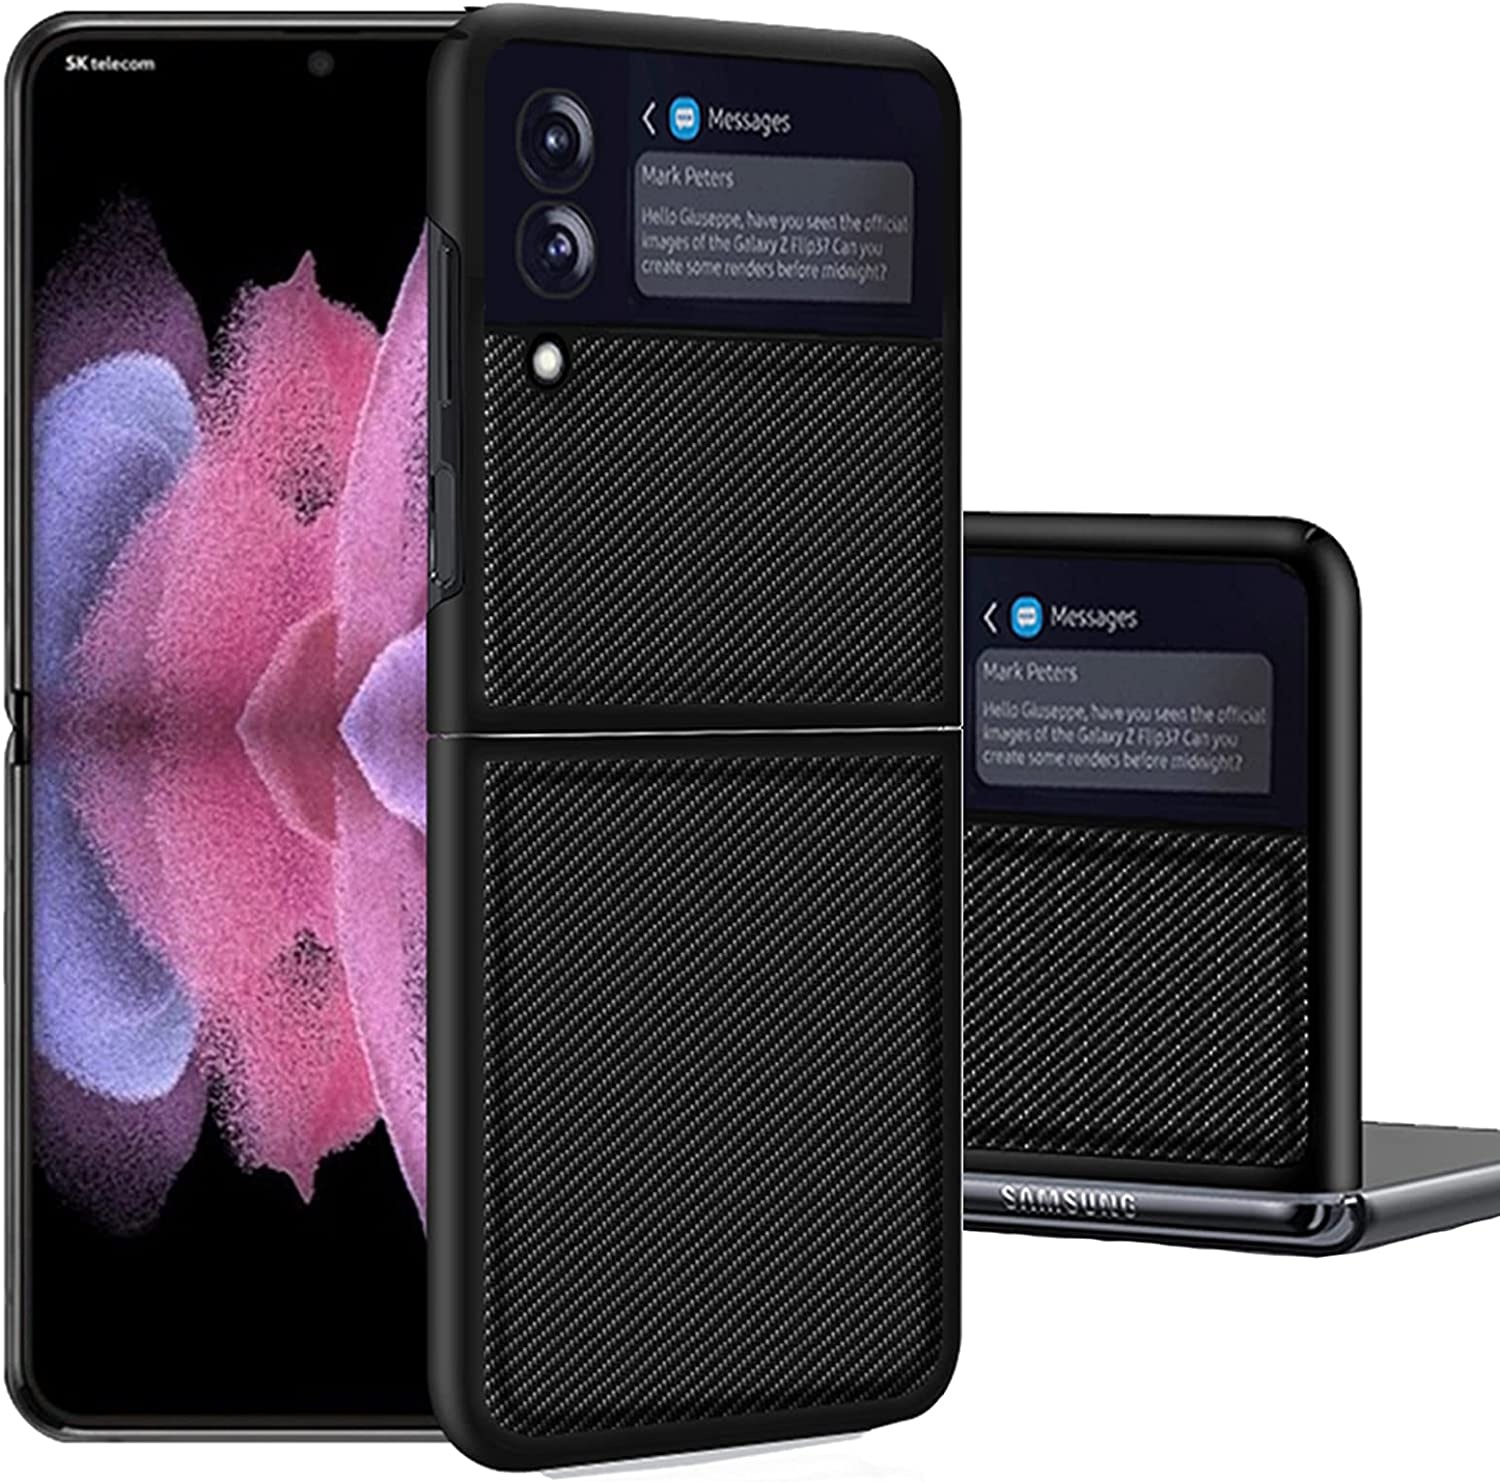 Miimall Compatible Samsung Galaxy Z Flip 3 Case Leather Pattern Soft Anti-Scratch Lightweight Cover Anti-Fingerprints Full Protective Cases Bumper for Samsung Galaxy Z Flip 3 5G 2021(Black)